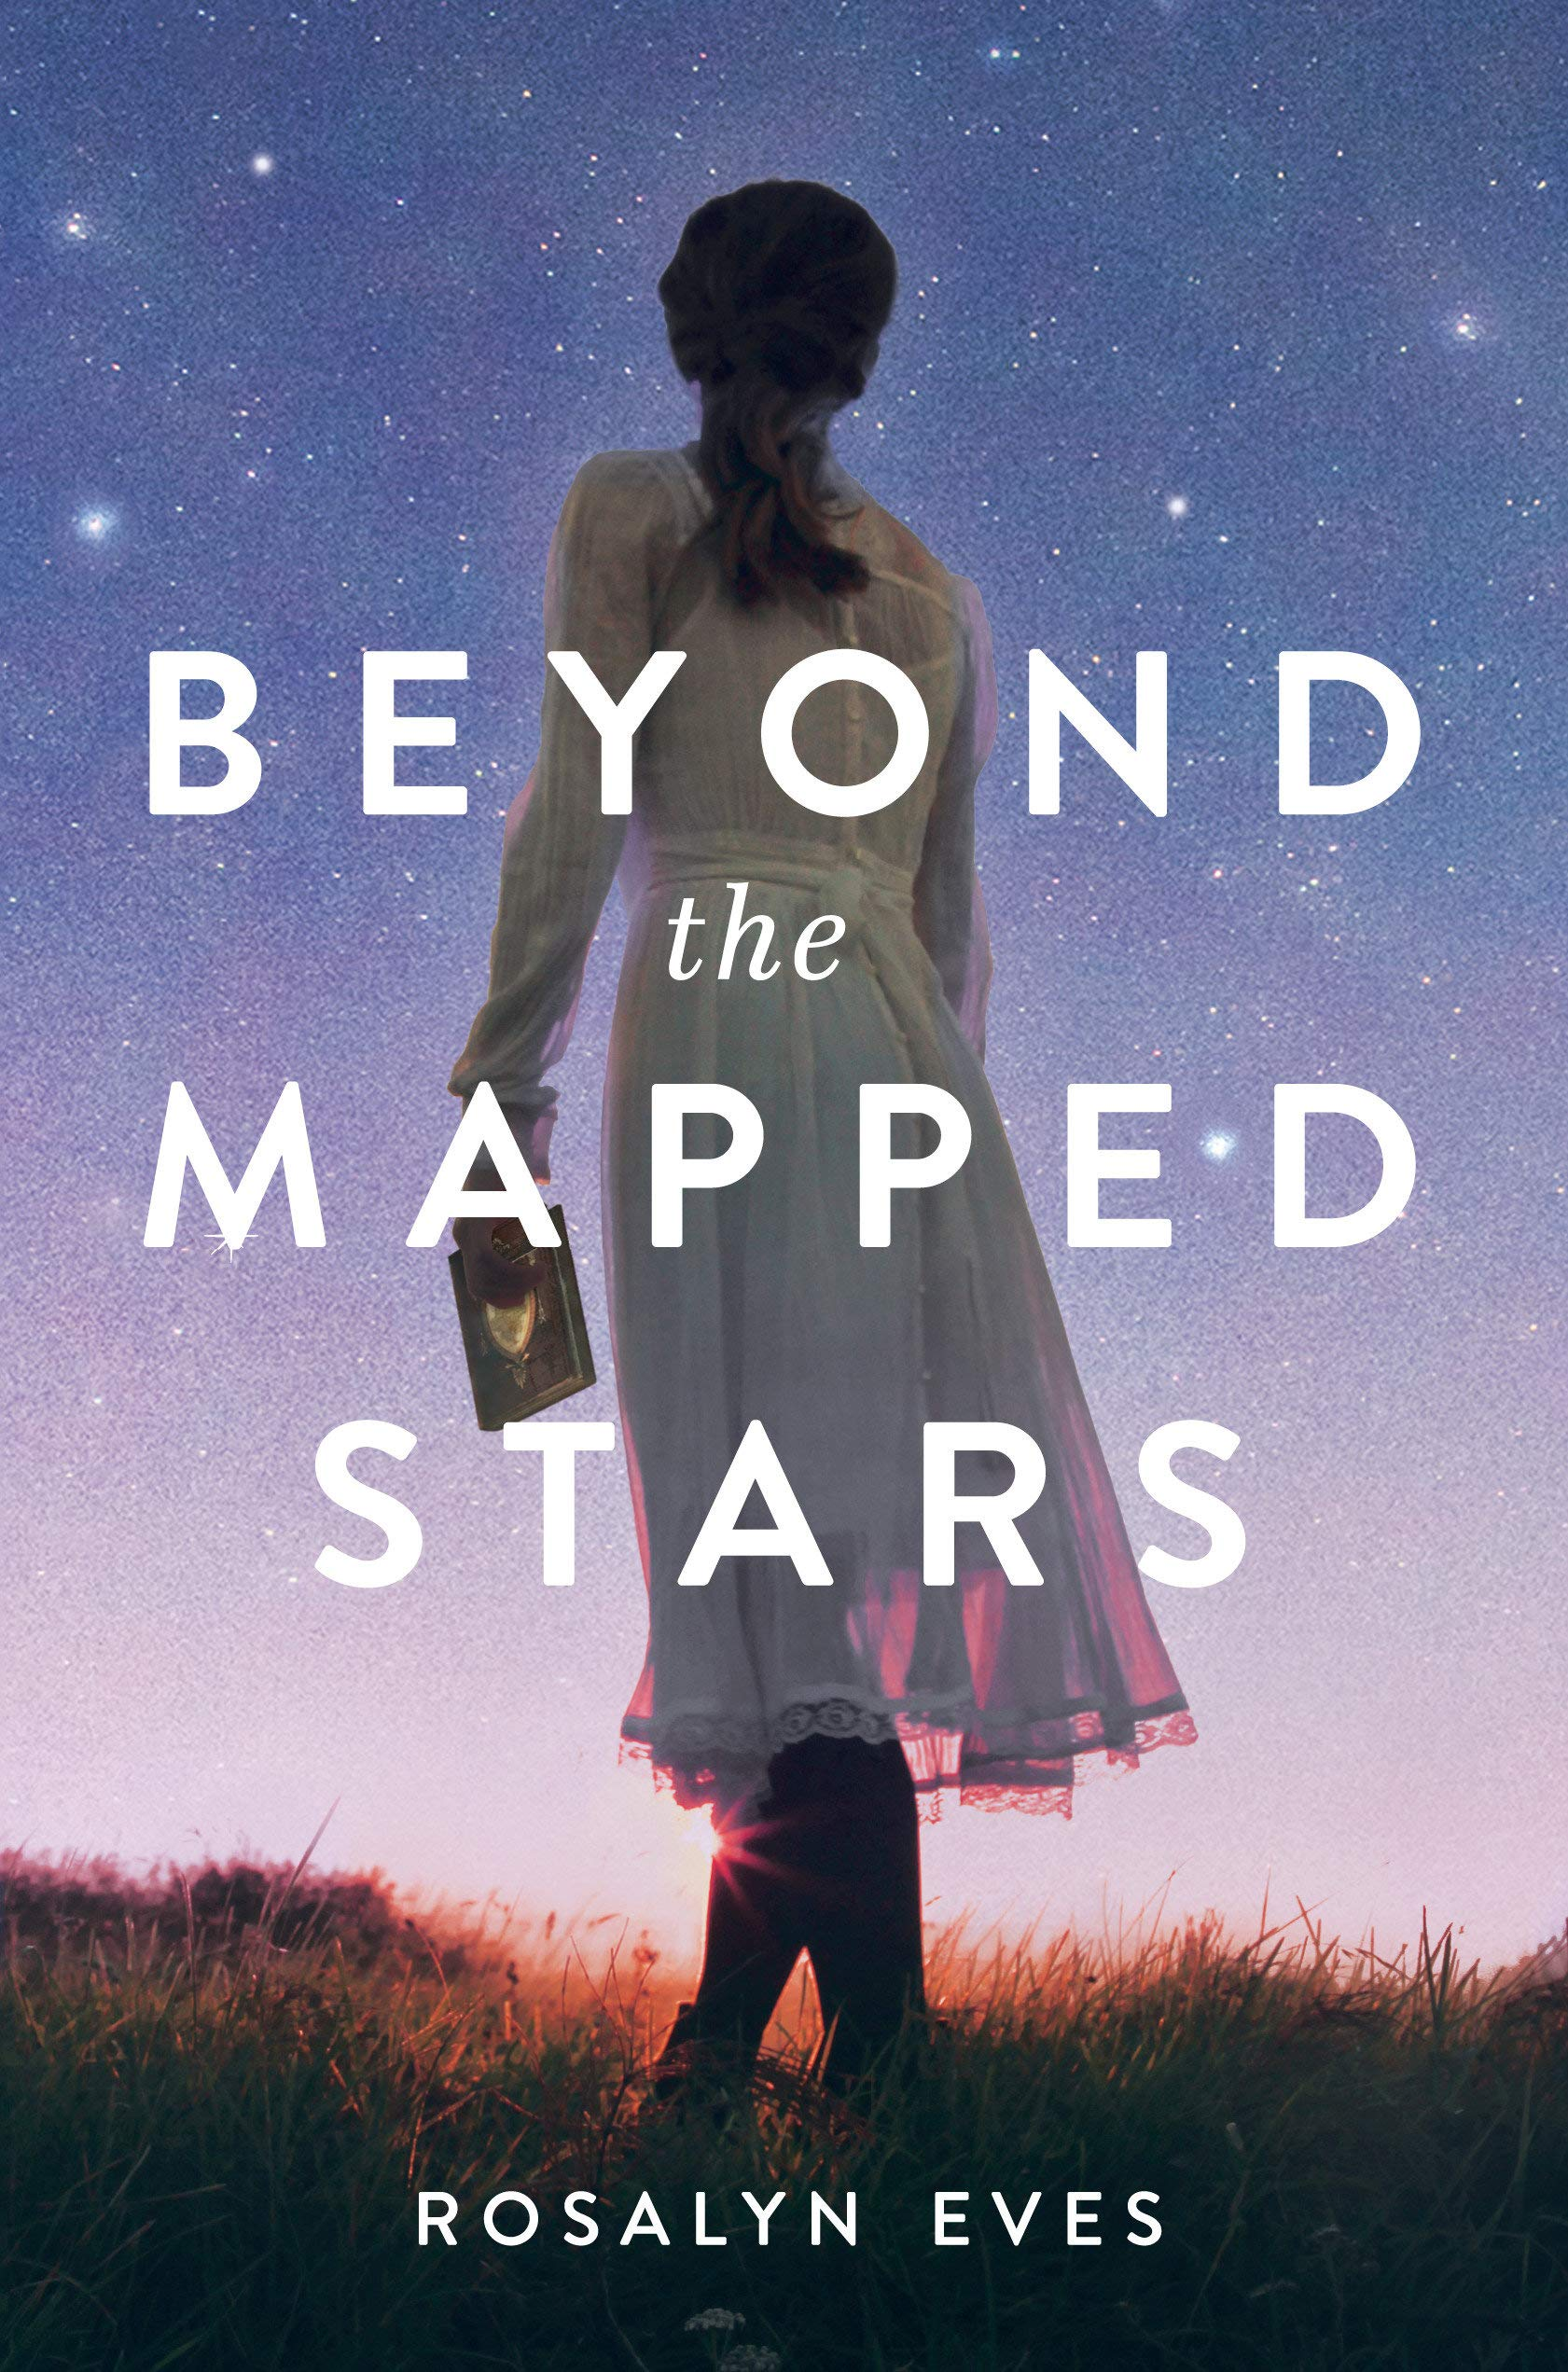 When Will Beyond The Mapped Stars Come Out? Rosalyn Eves 2021 New Releases